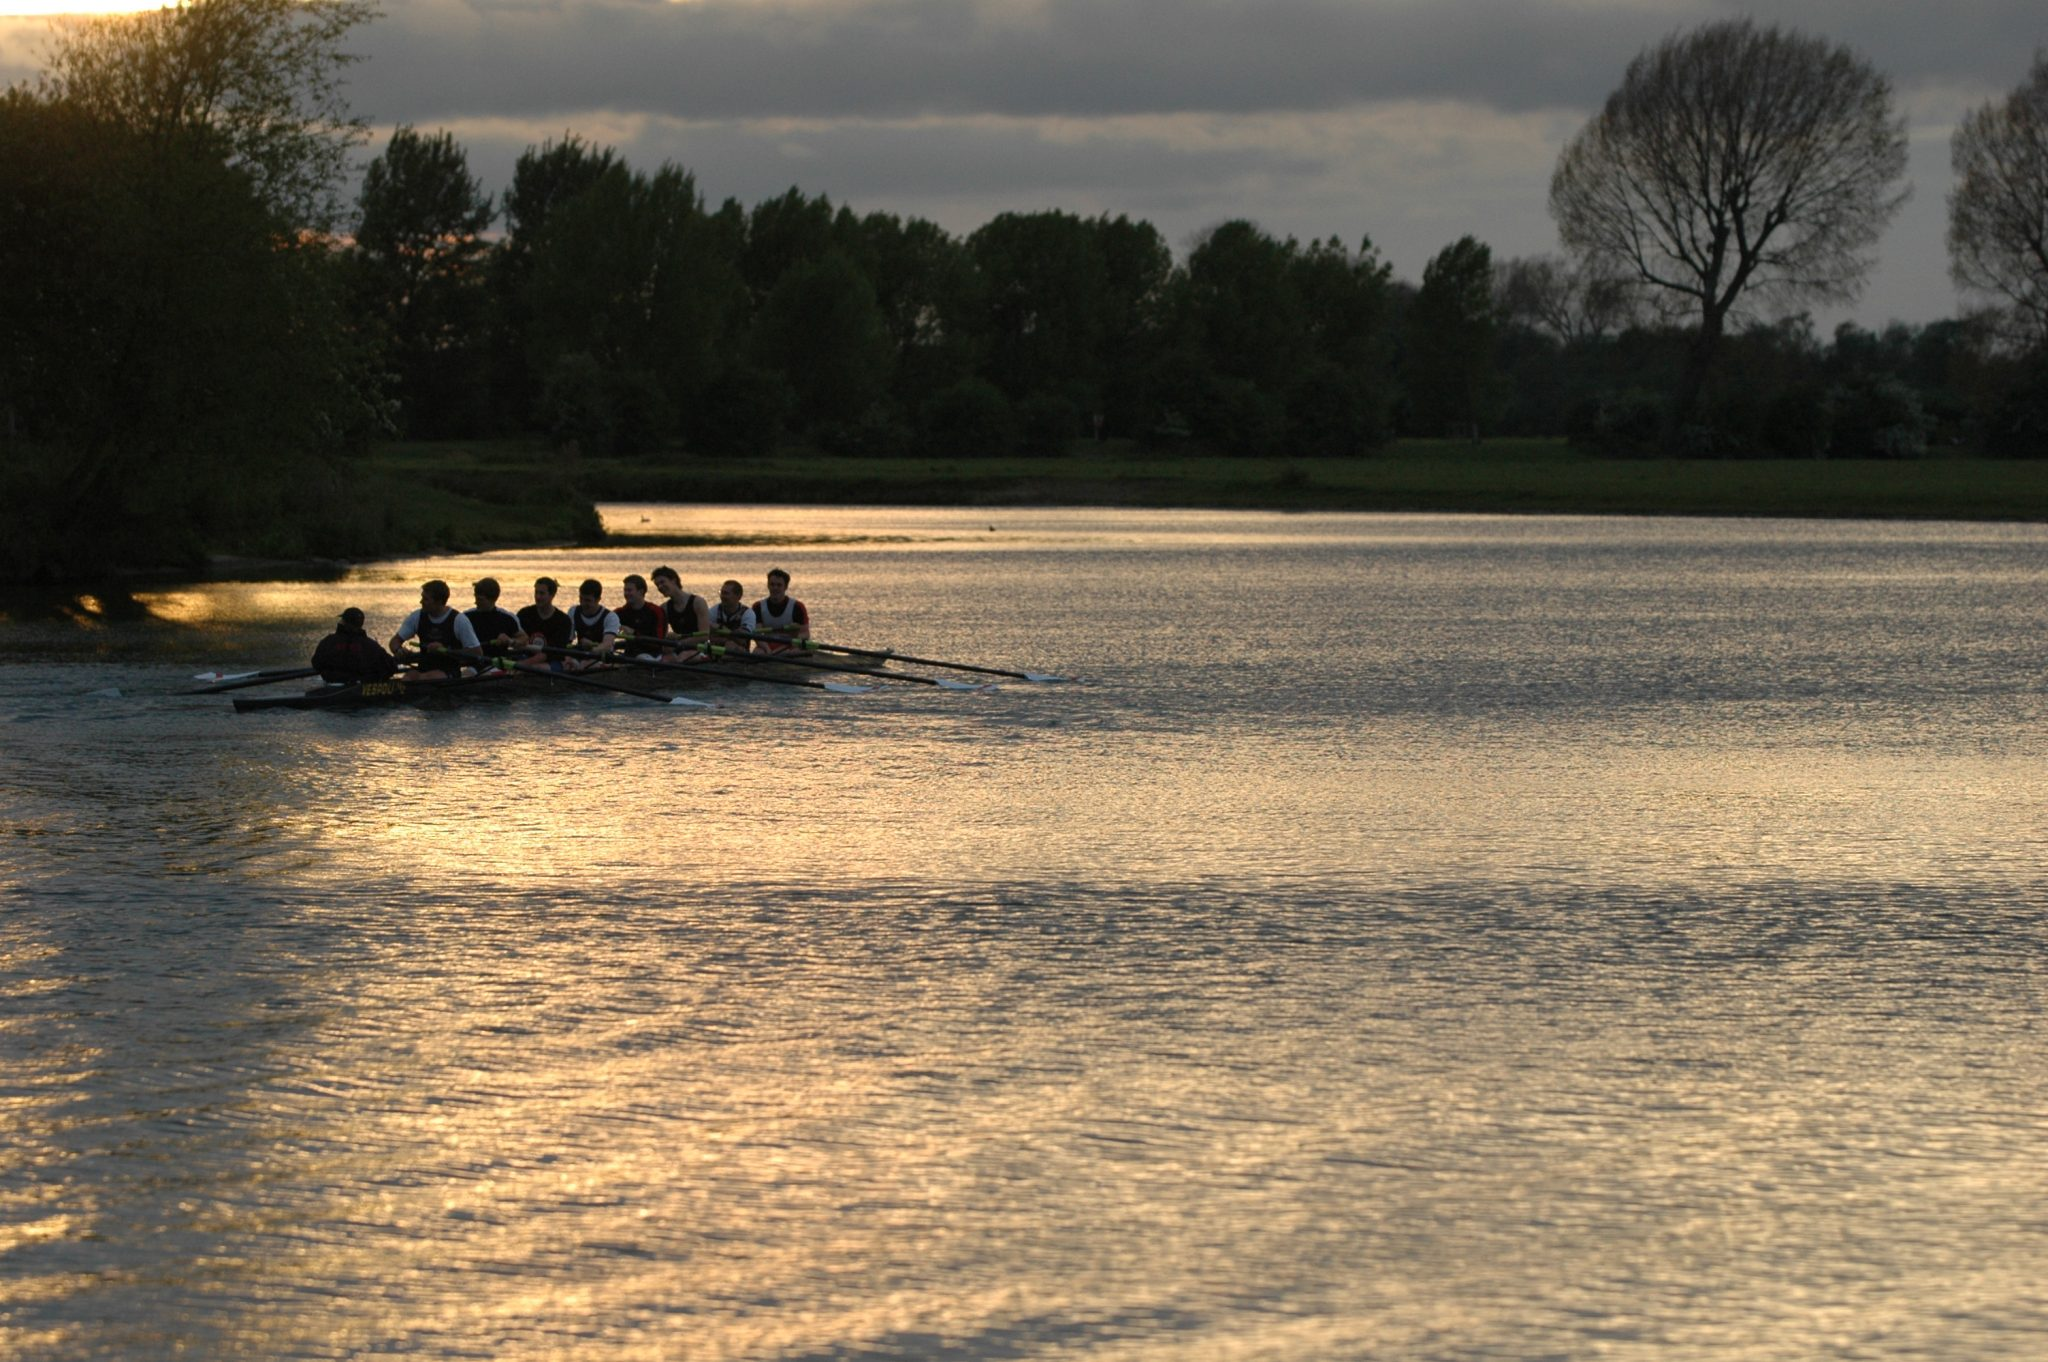 Rowing at Oxford isn't scary